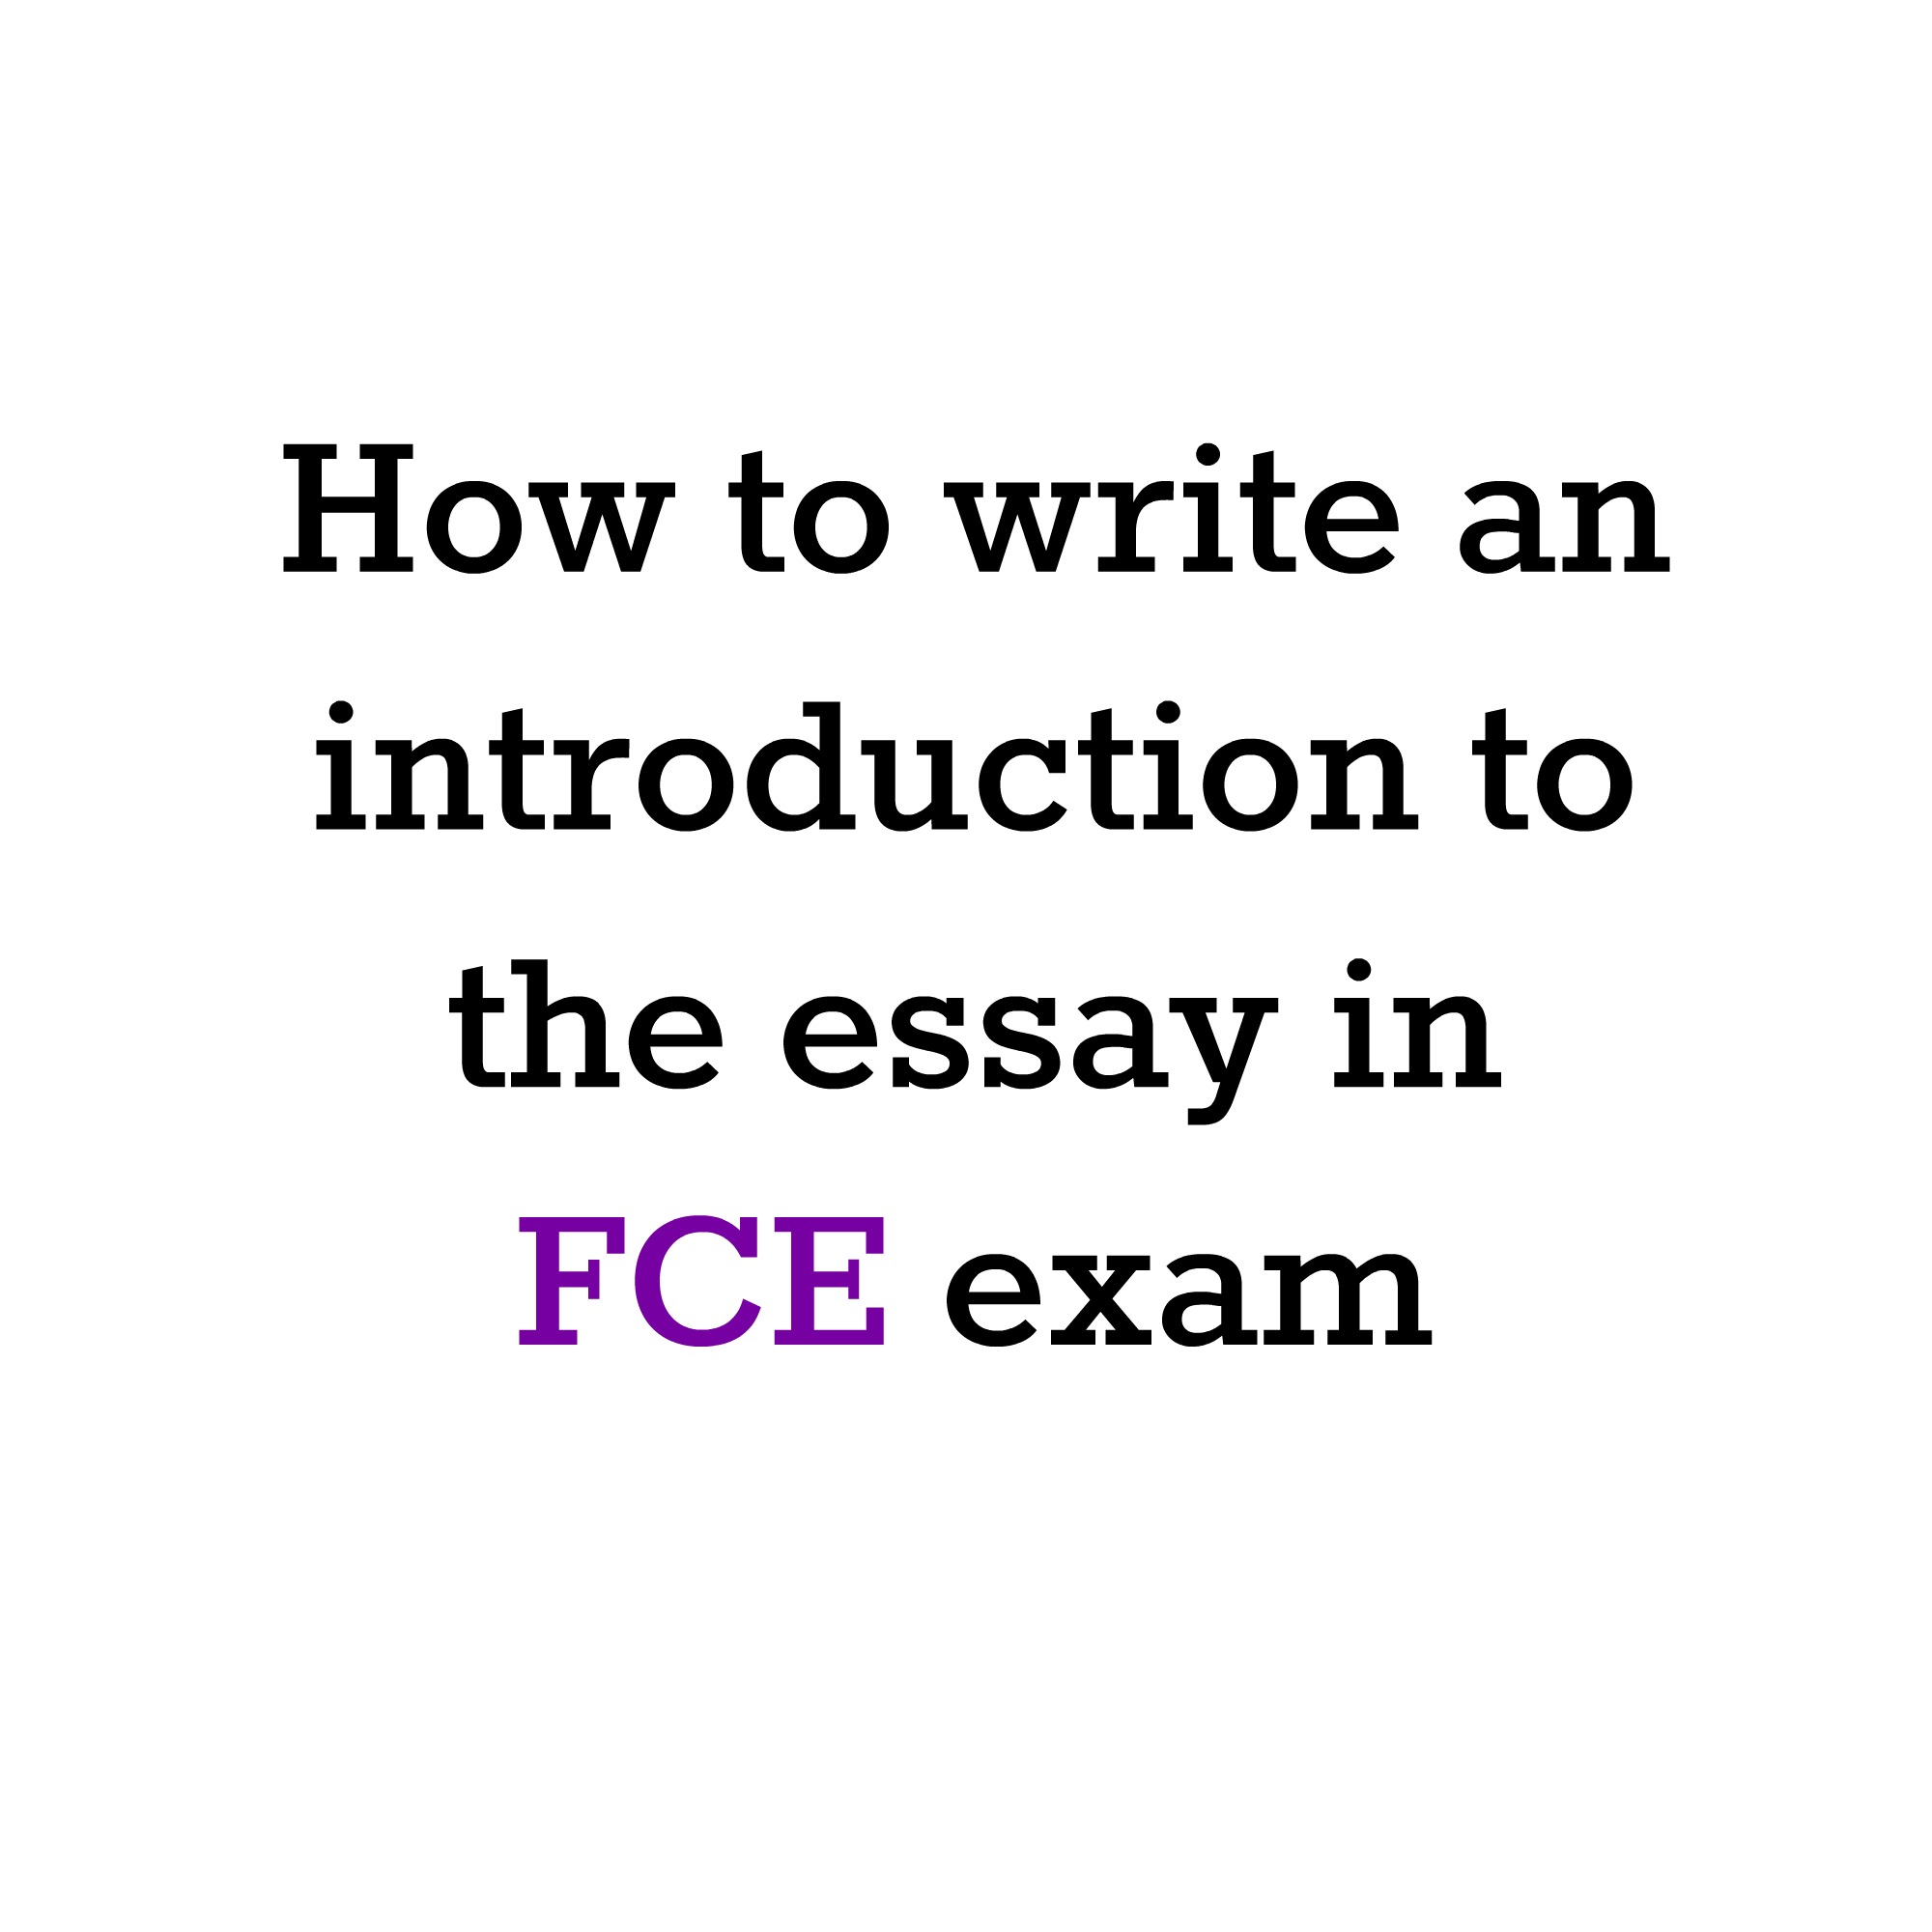 essay good introduction writing How to write the introduction to a solution  essay for FCE exam